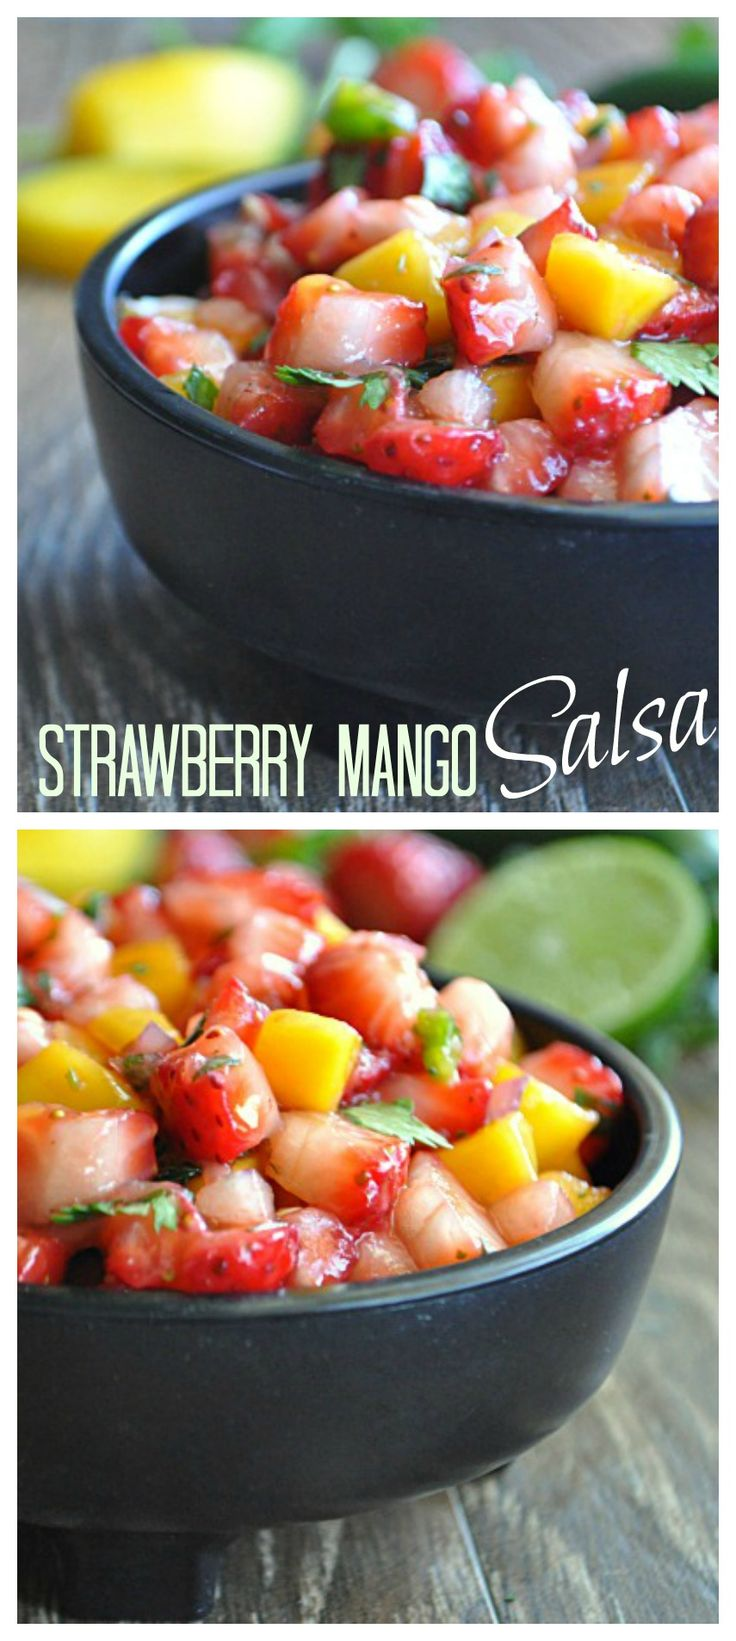 Strawberry Mango Salsa!  Perfect blend of sweet and spice.  Would be amazing on fish or shrimp tacos! Recipe at http://www.houseofyumm.com